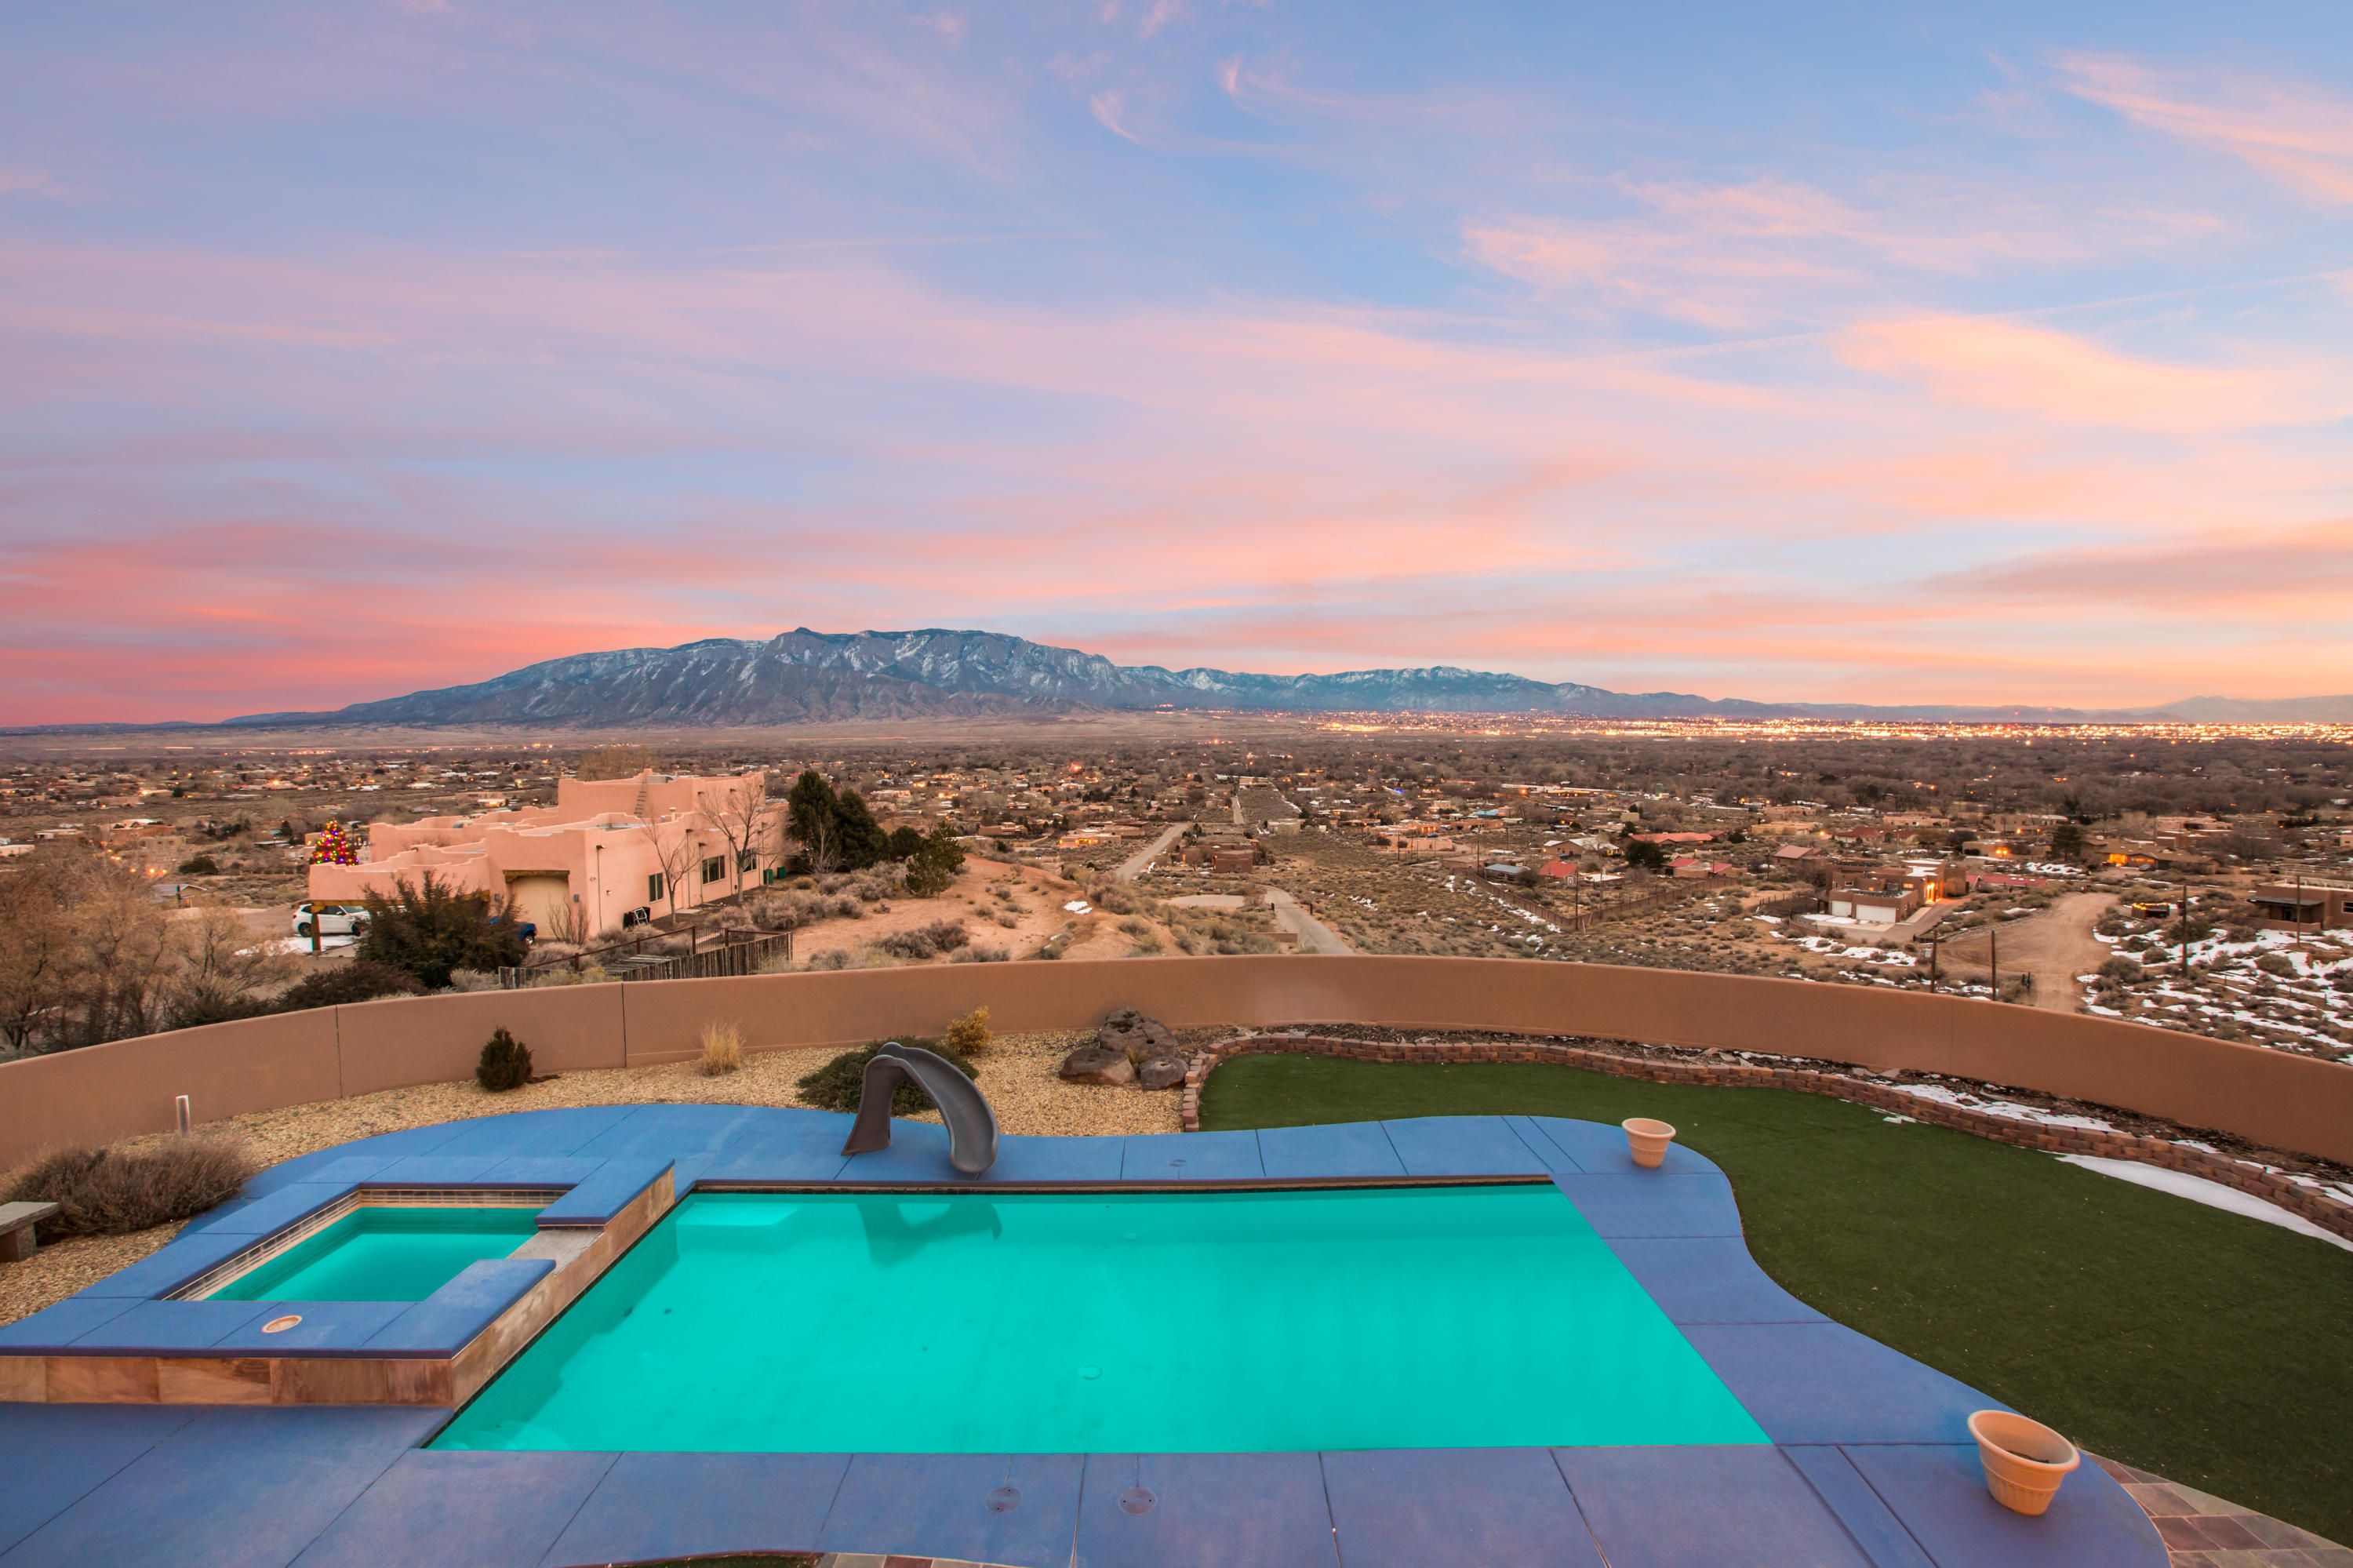 For the buyer who values jaw dropping views and privacy, this property is not to be missed. A long gated drive welcomes you to one of Corrales' finest properties with ever-changing views of the majestic Sandia Mountains, remarkable sunsets, and twinkling city lights. This spectacular custom home was designed to take advantage of the views from it's hilltop location. Beautiful craftsmanship awaits with hand scraped distressed hardwood floors, rich alder custom doors and furniture grade cabinetry, beautiful wood windows to frame the views, and beautifully designed tile layouts. Enjoy the ever-changing views from the backyard with a custom gunite swimming pool with a hot tub, a wood burning kiva fireplace & fire pit. Main level master is beautifully appointed with sauna & steam shower.